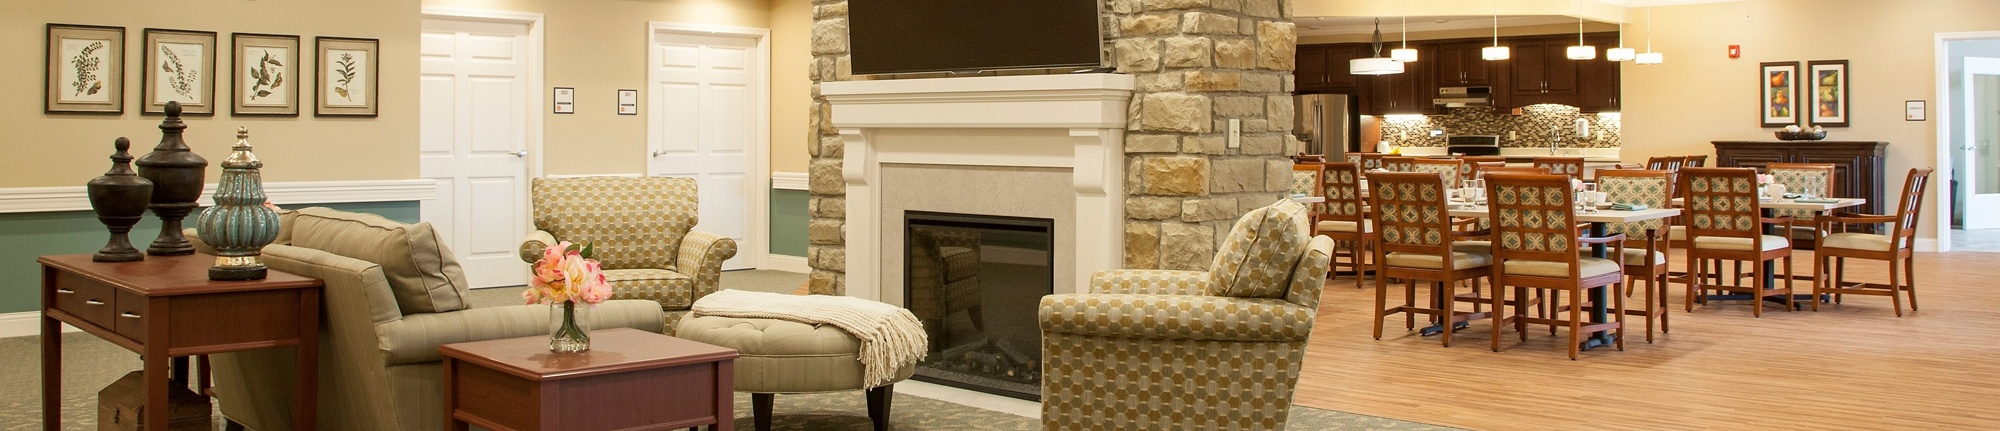 Services & Amenities for Senior Living